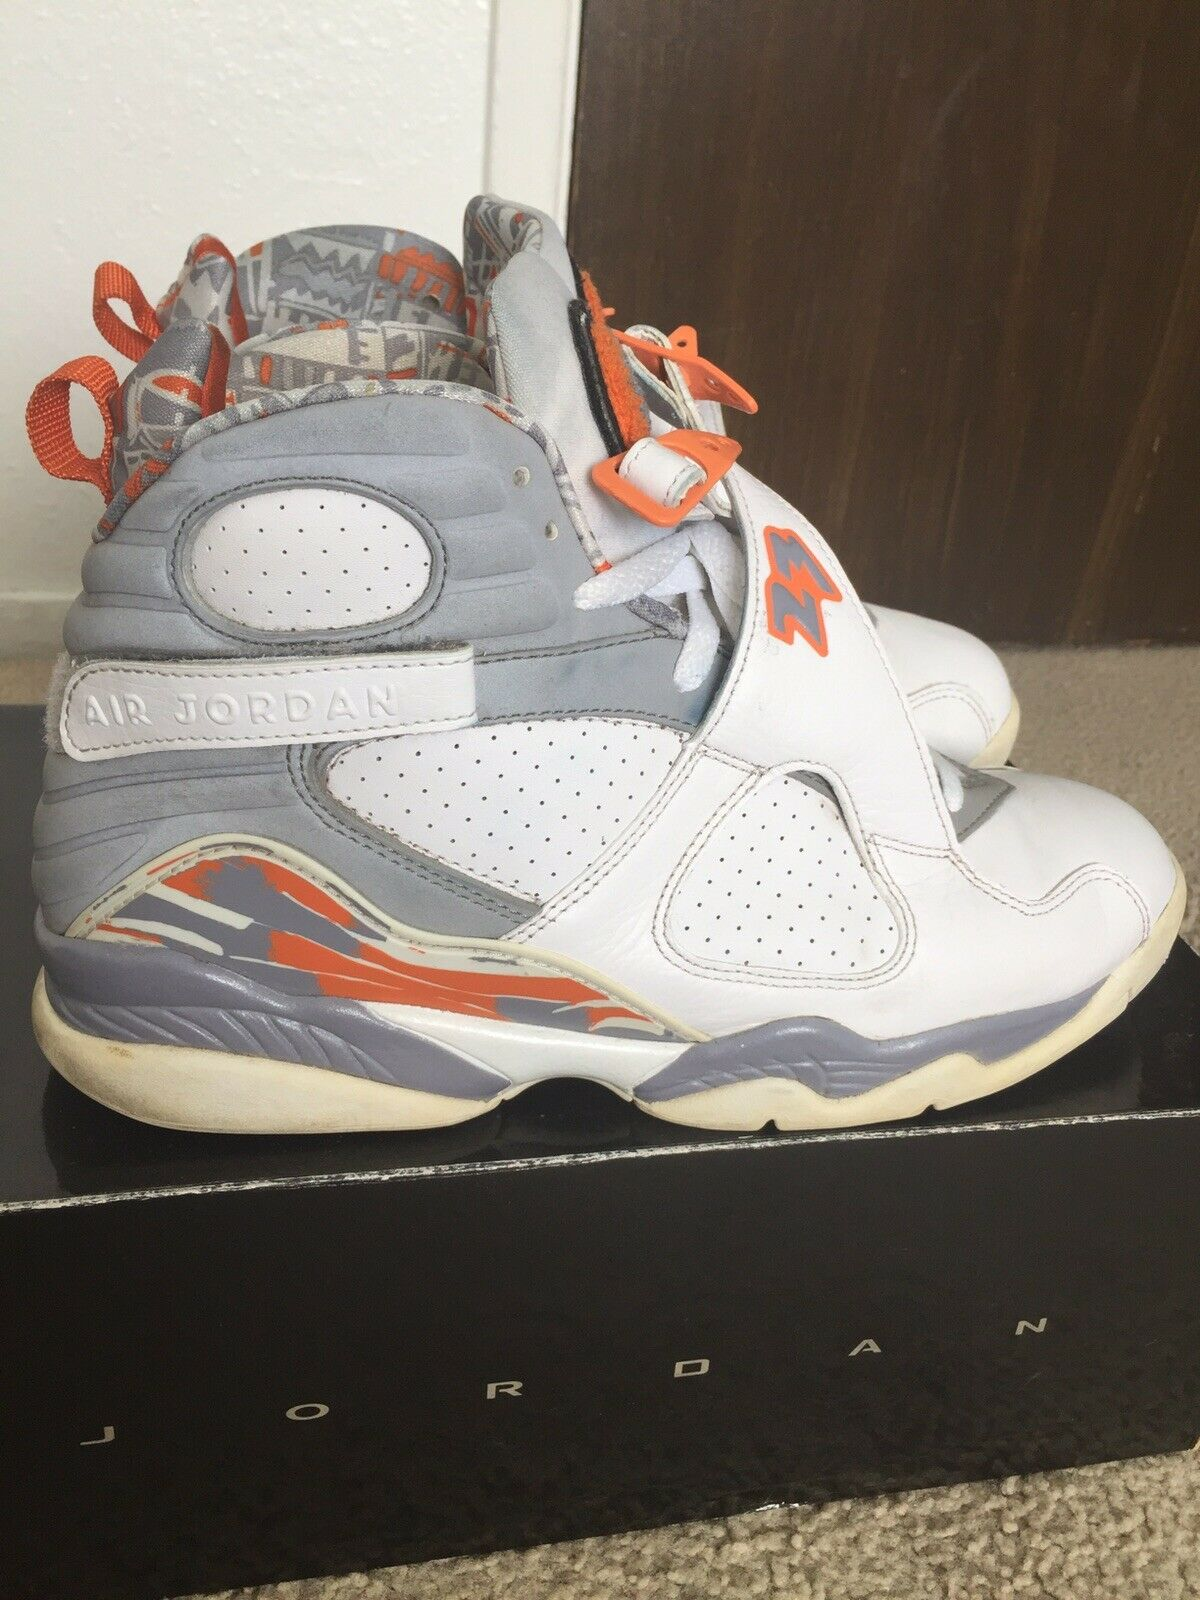 Nike Air Jordan 8 VIII Stealth orange Mens sz 10